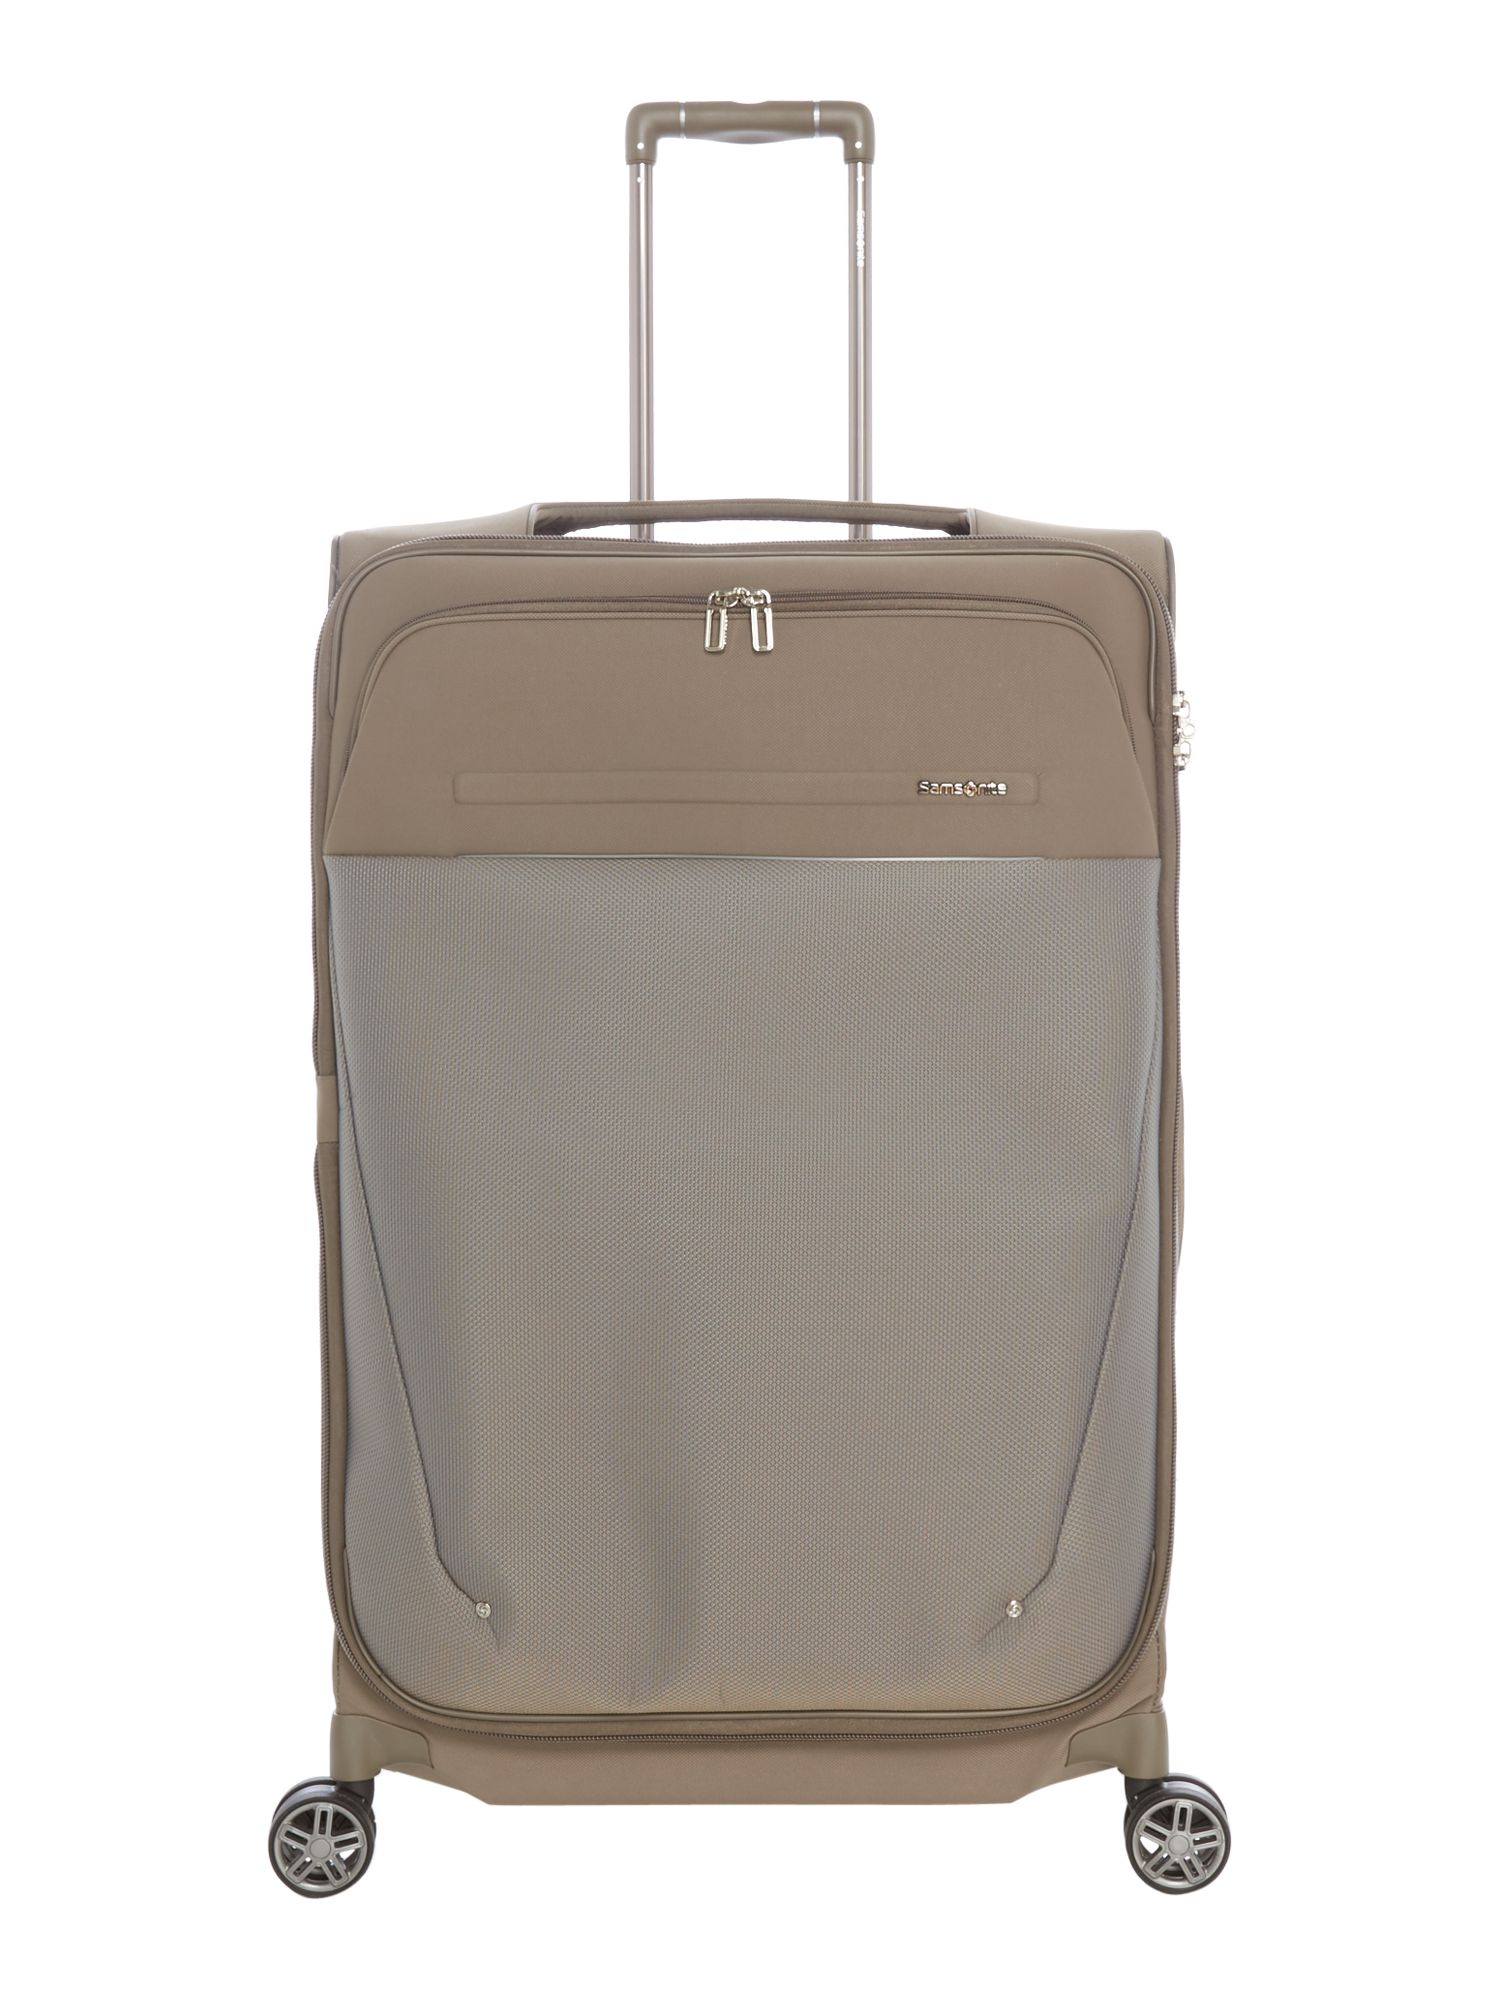 Samsonite B-Lite Icon Dark Sand 78cm Large Spinner Suitcase, White